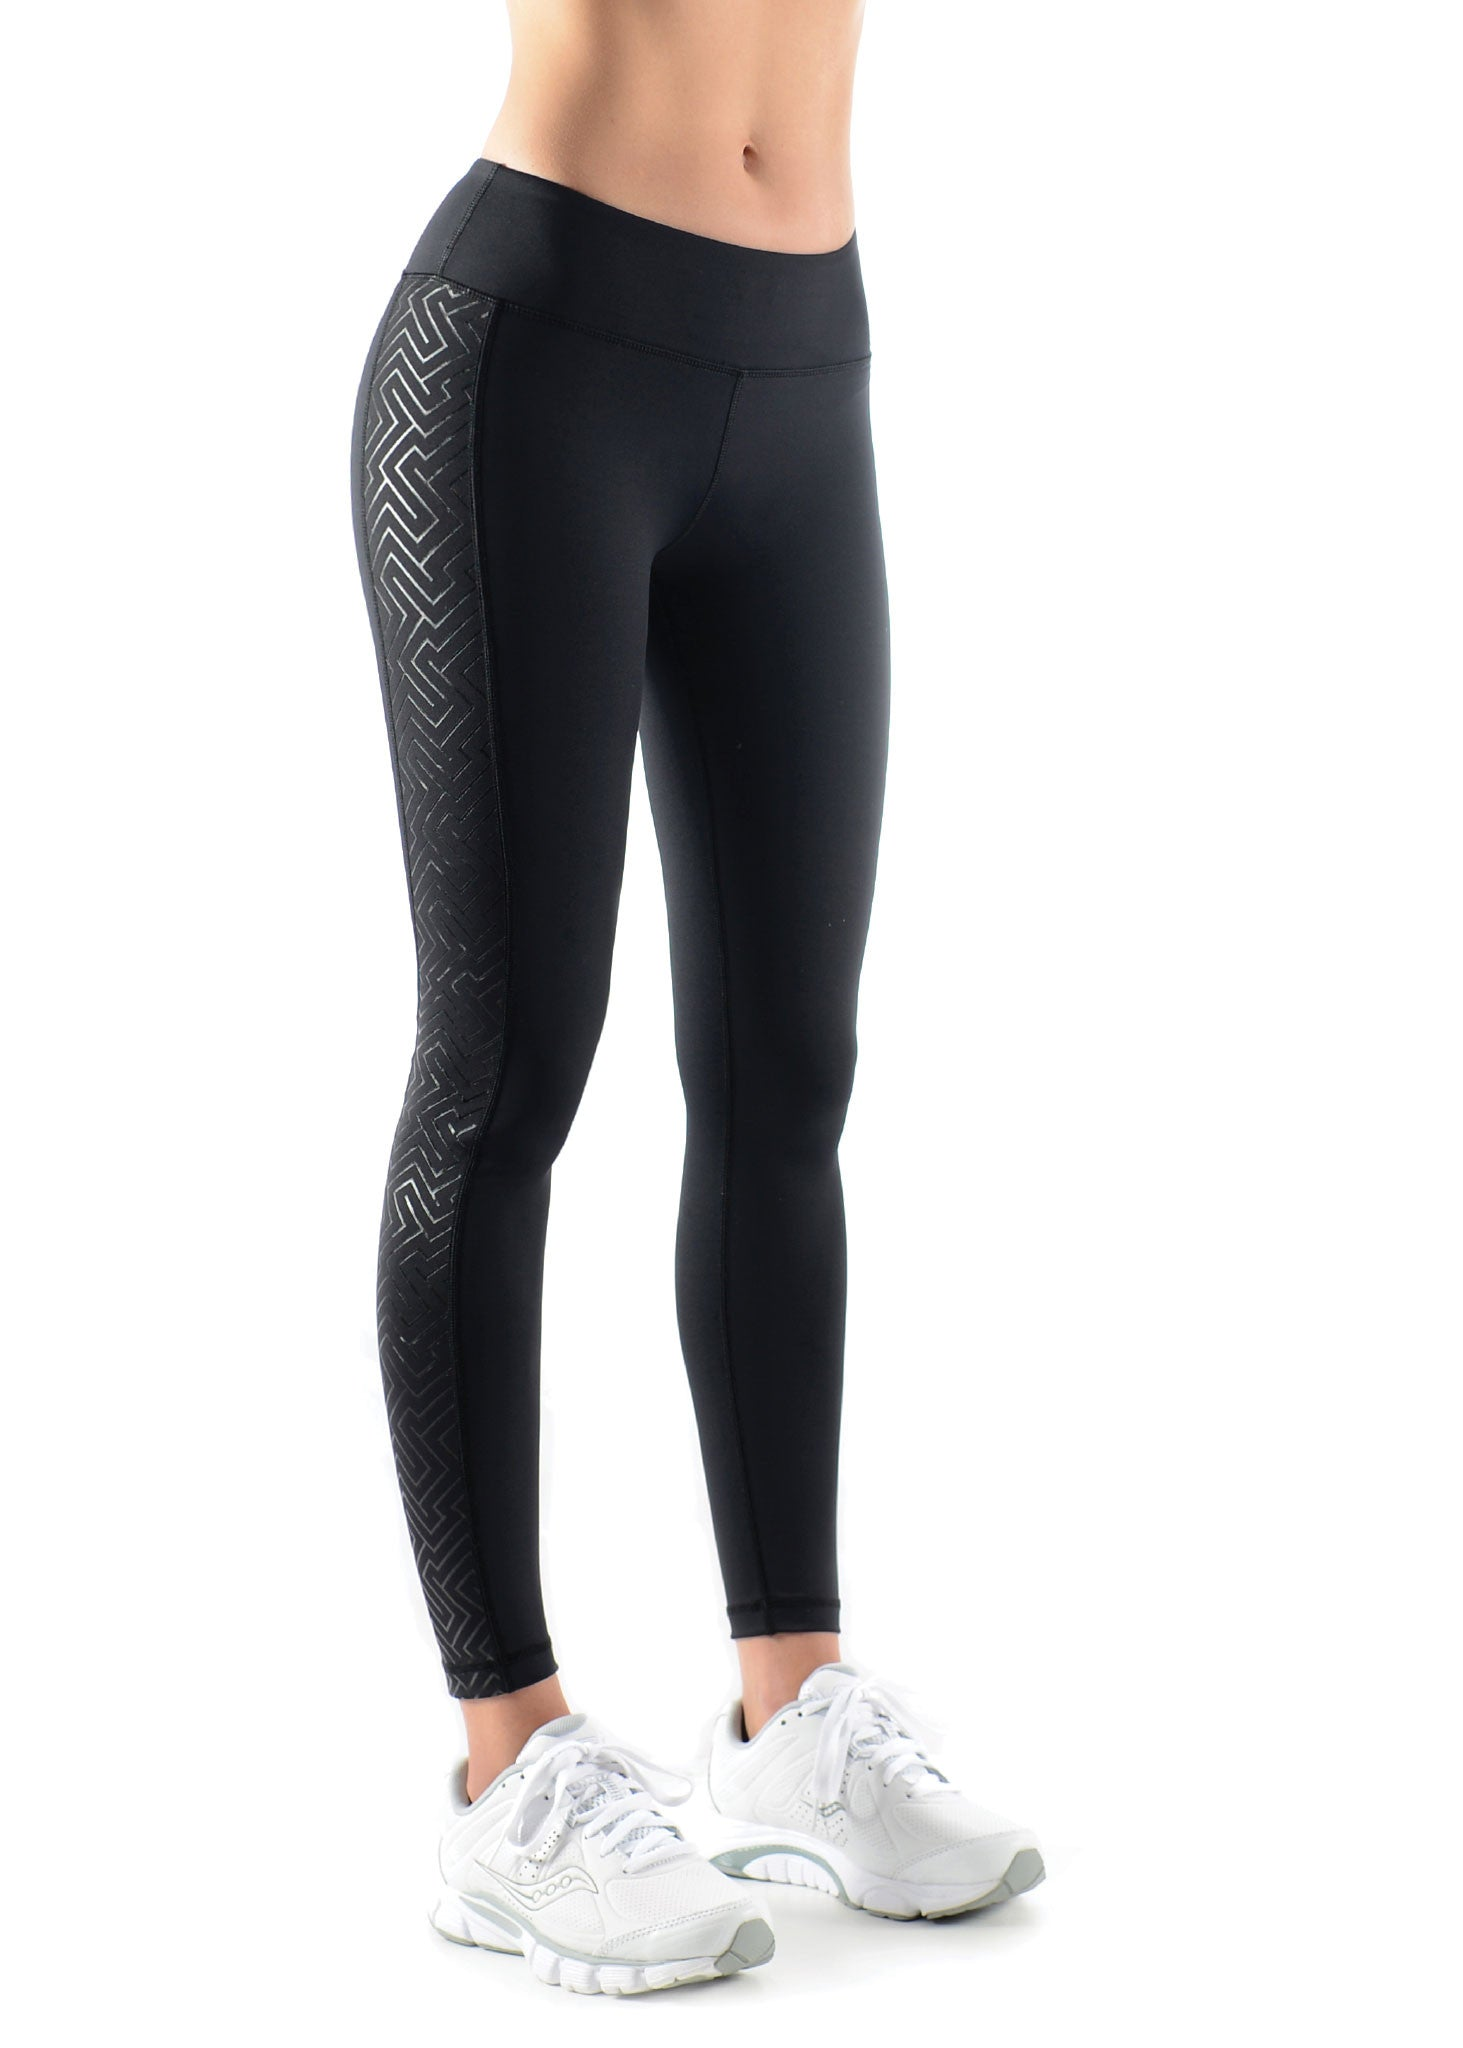 Magestic Maze F/L Compression Tights